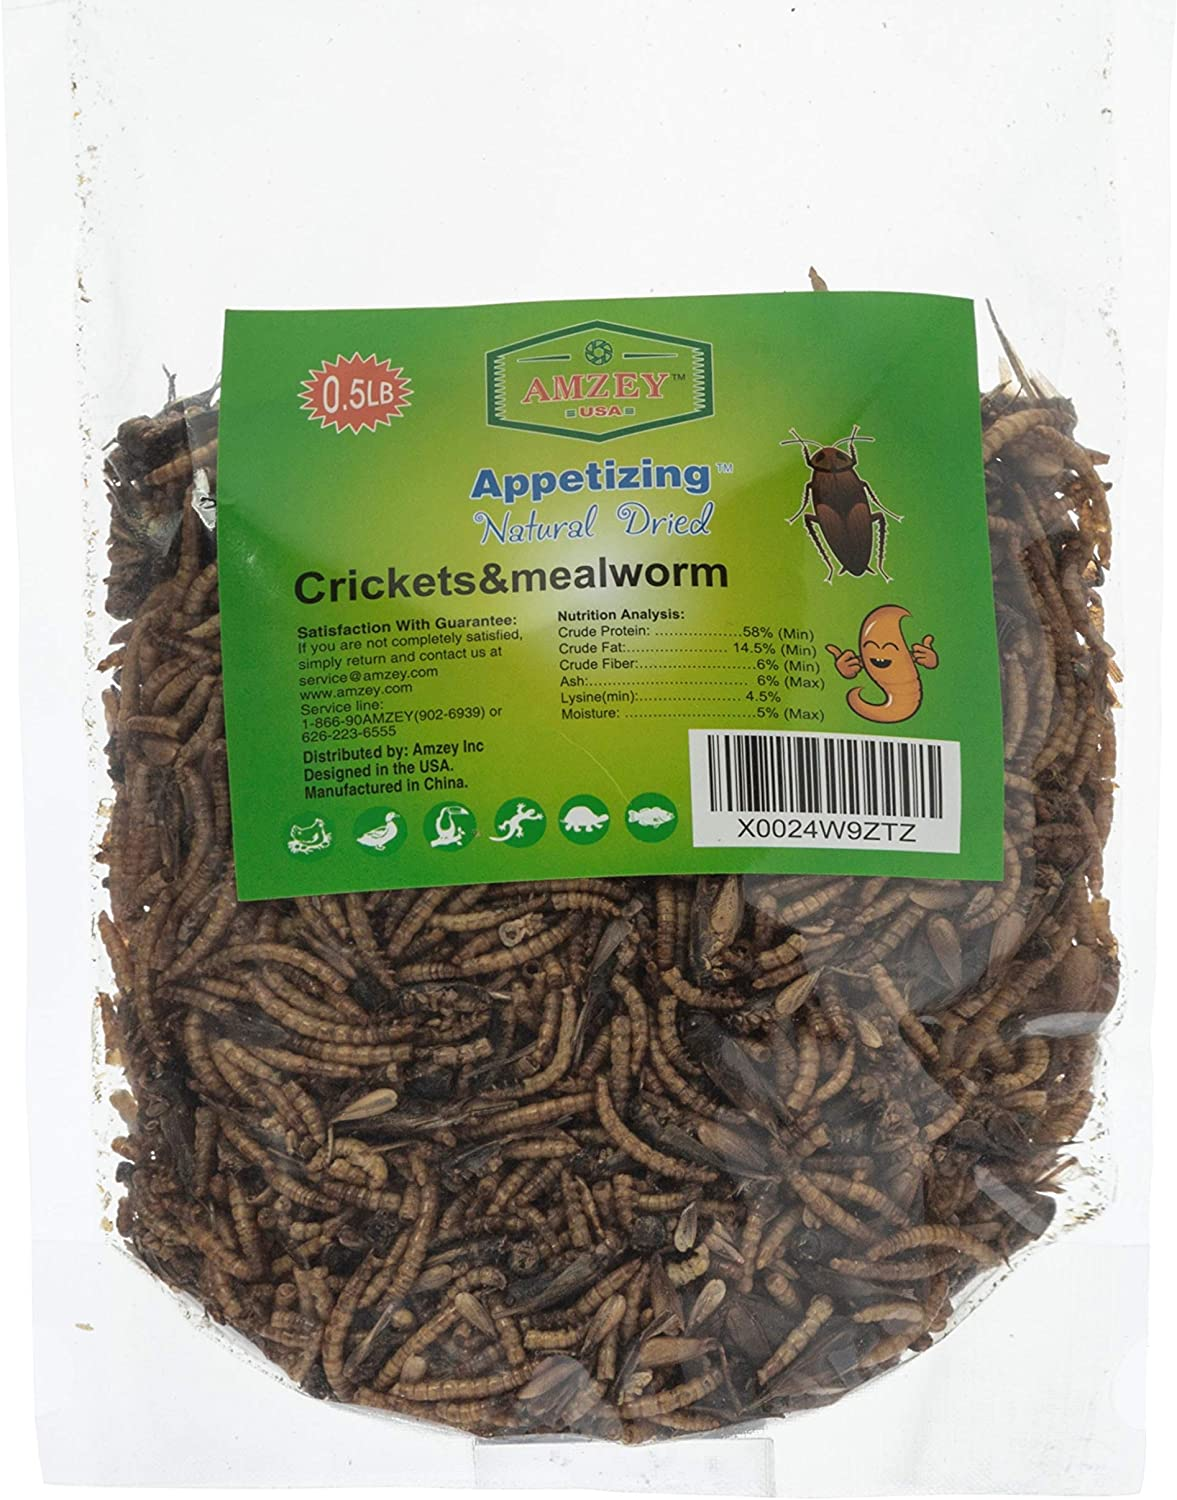 Appetizing Mealworms with Natural Dried Crickets (8oz) All Natural 100% Non-GMO, Food for Breaded Dragons, Reptiles, Chicken, Fish, Ducks, Wild Birds, Turtles, Hamsters, Fish, and Hedgehogs